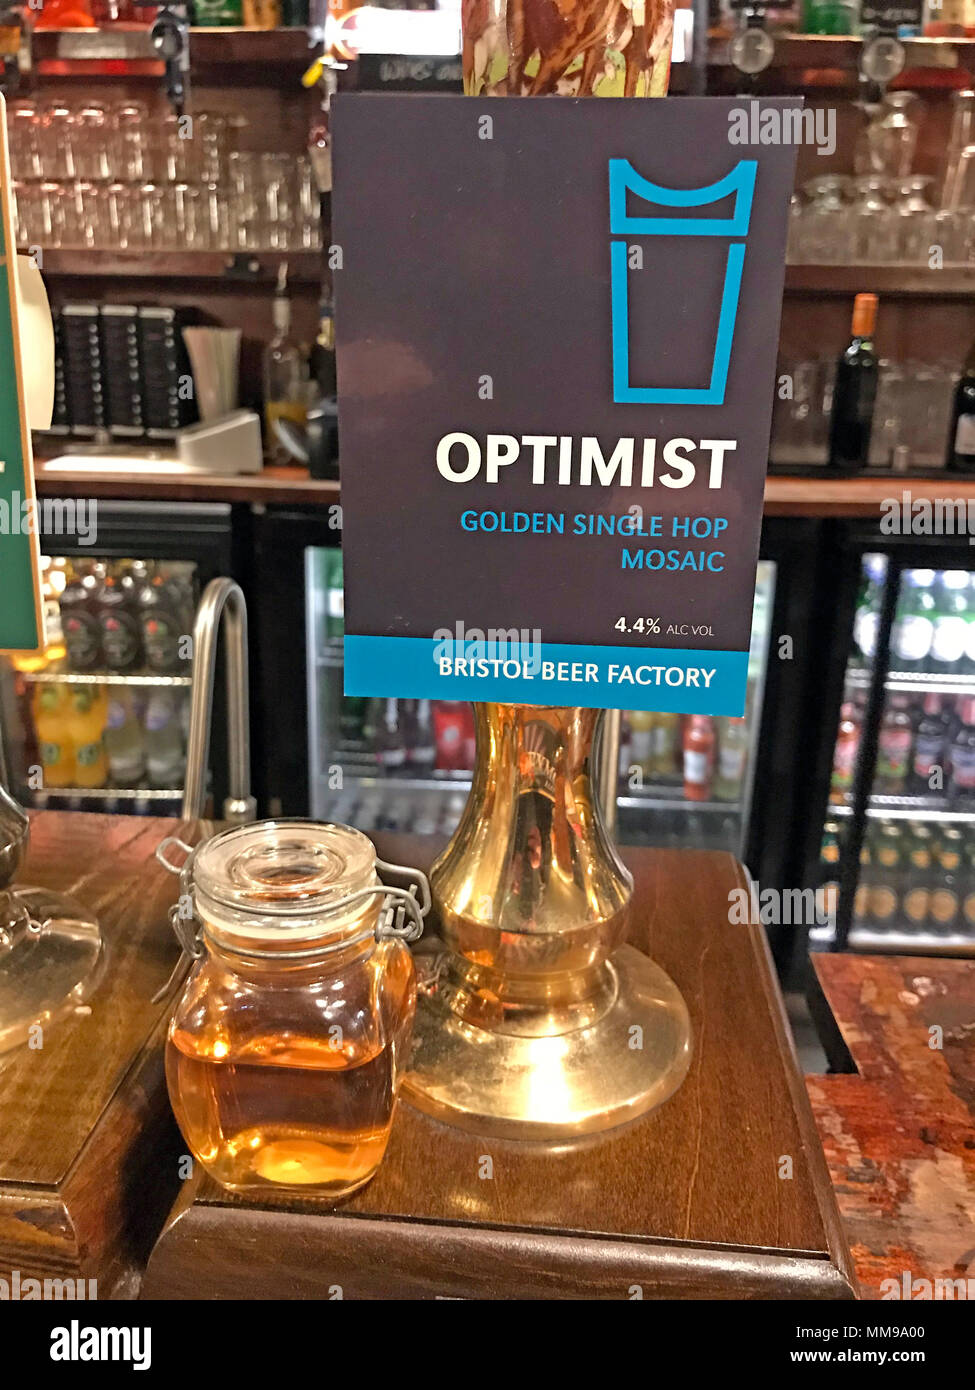 Optimist Bristol Beer Factory Beer pumps on a bar, in a traditional English pub, England, UK - Stock Image